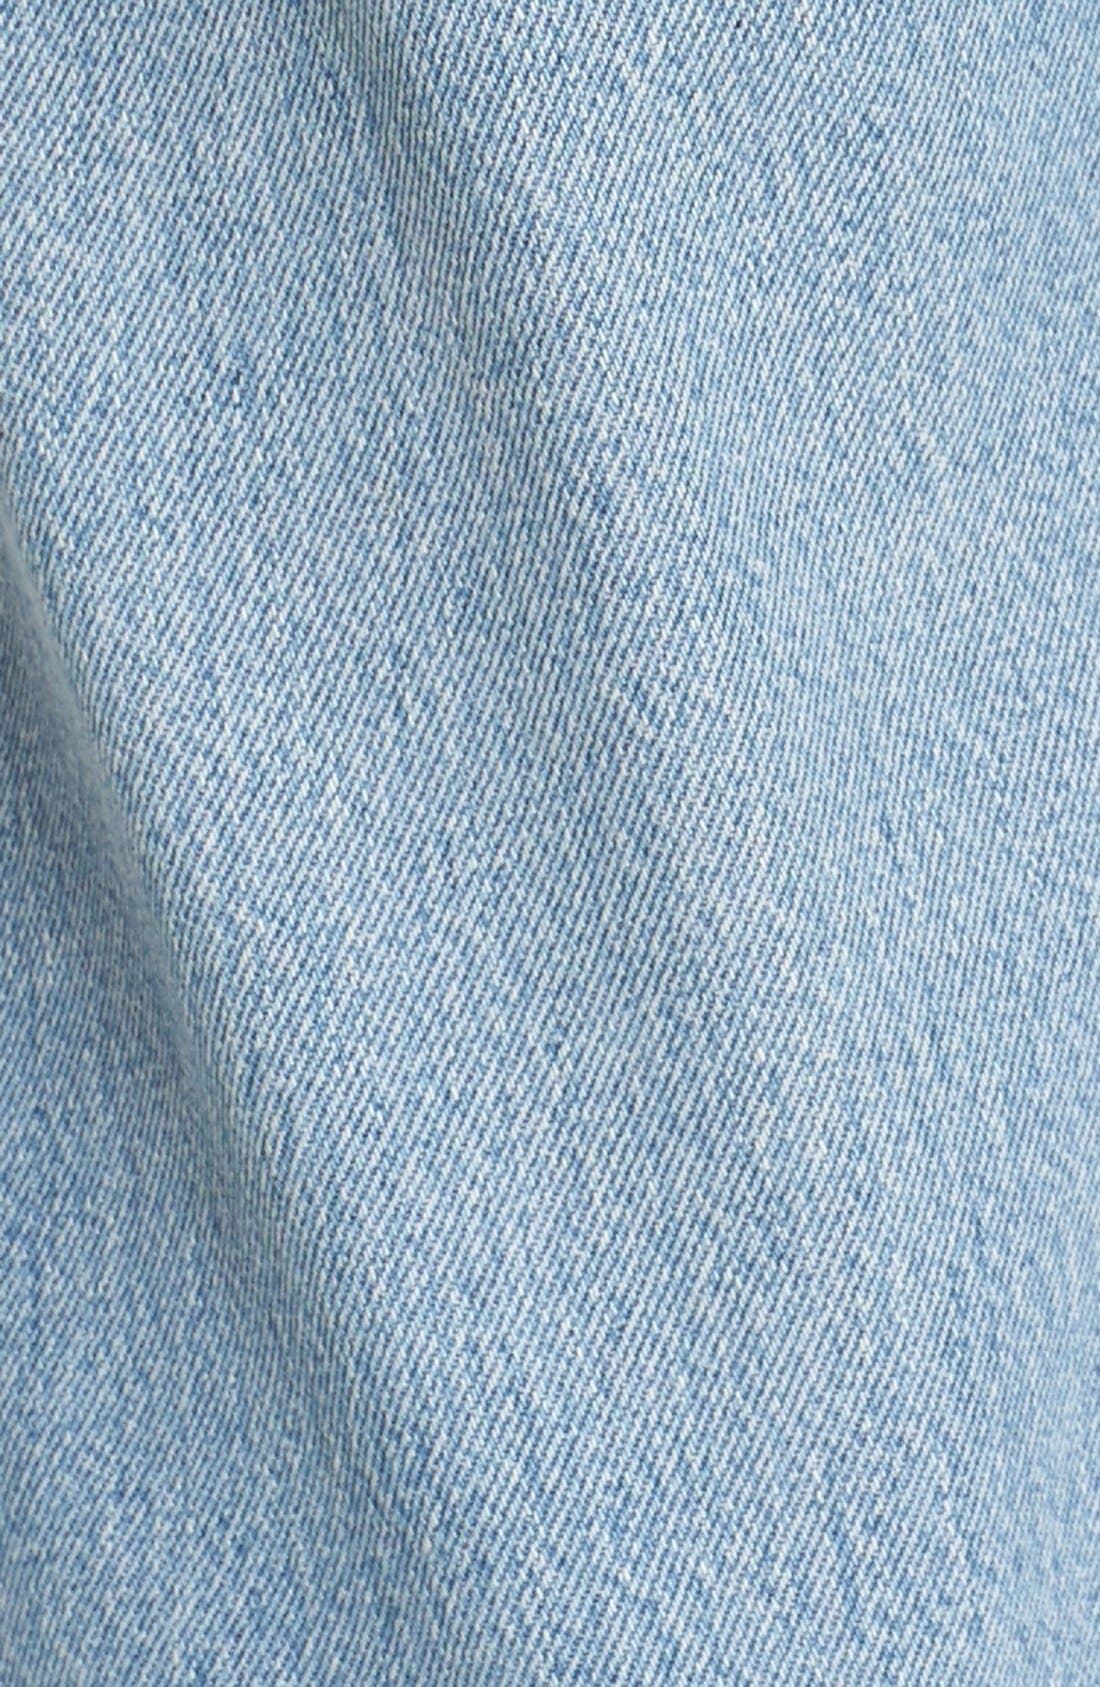 Alternate Image 5  - Re/Done 'The Relaxed Crop' Reconstructed Jeans